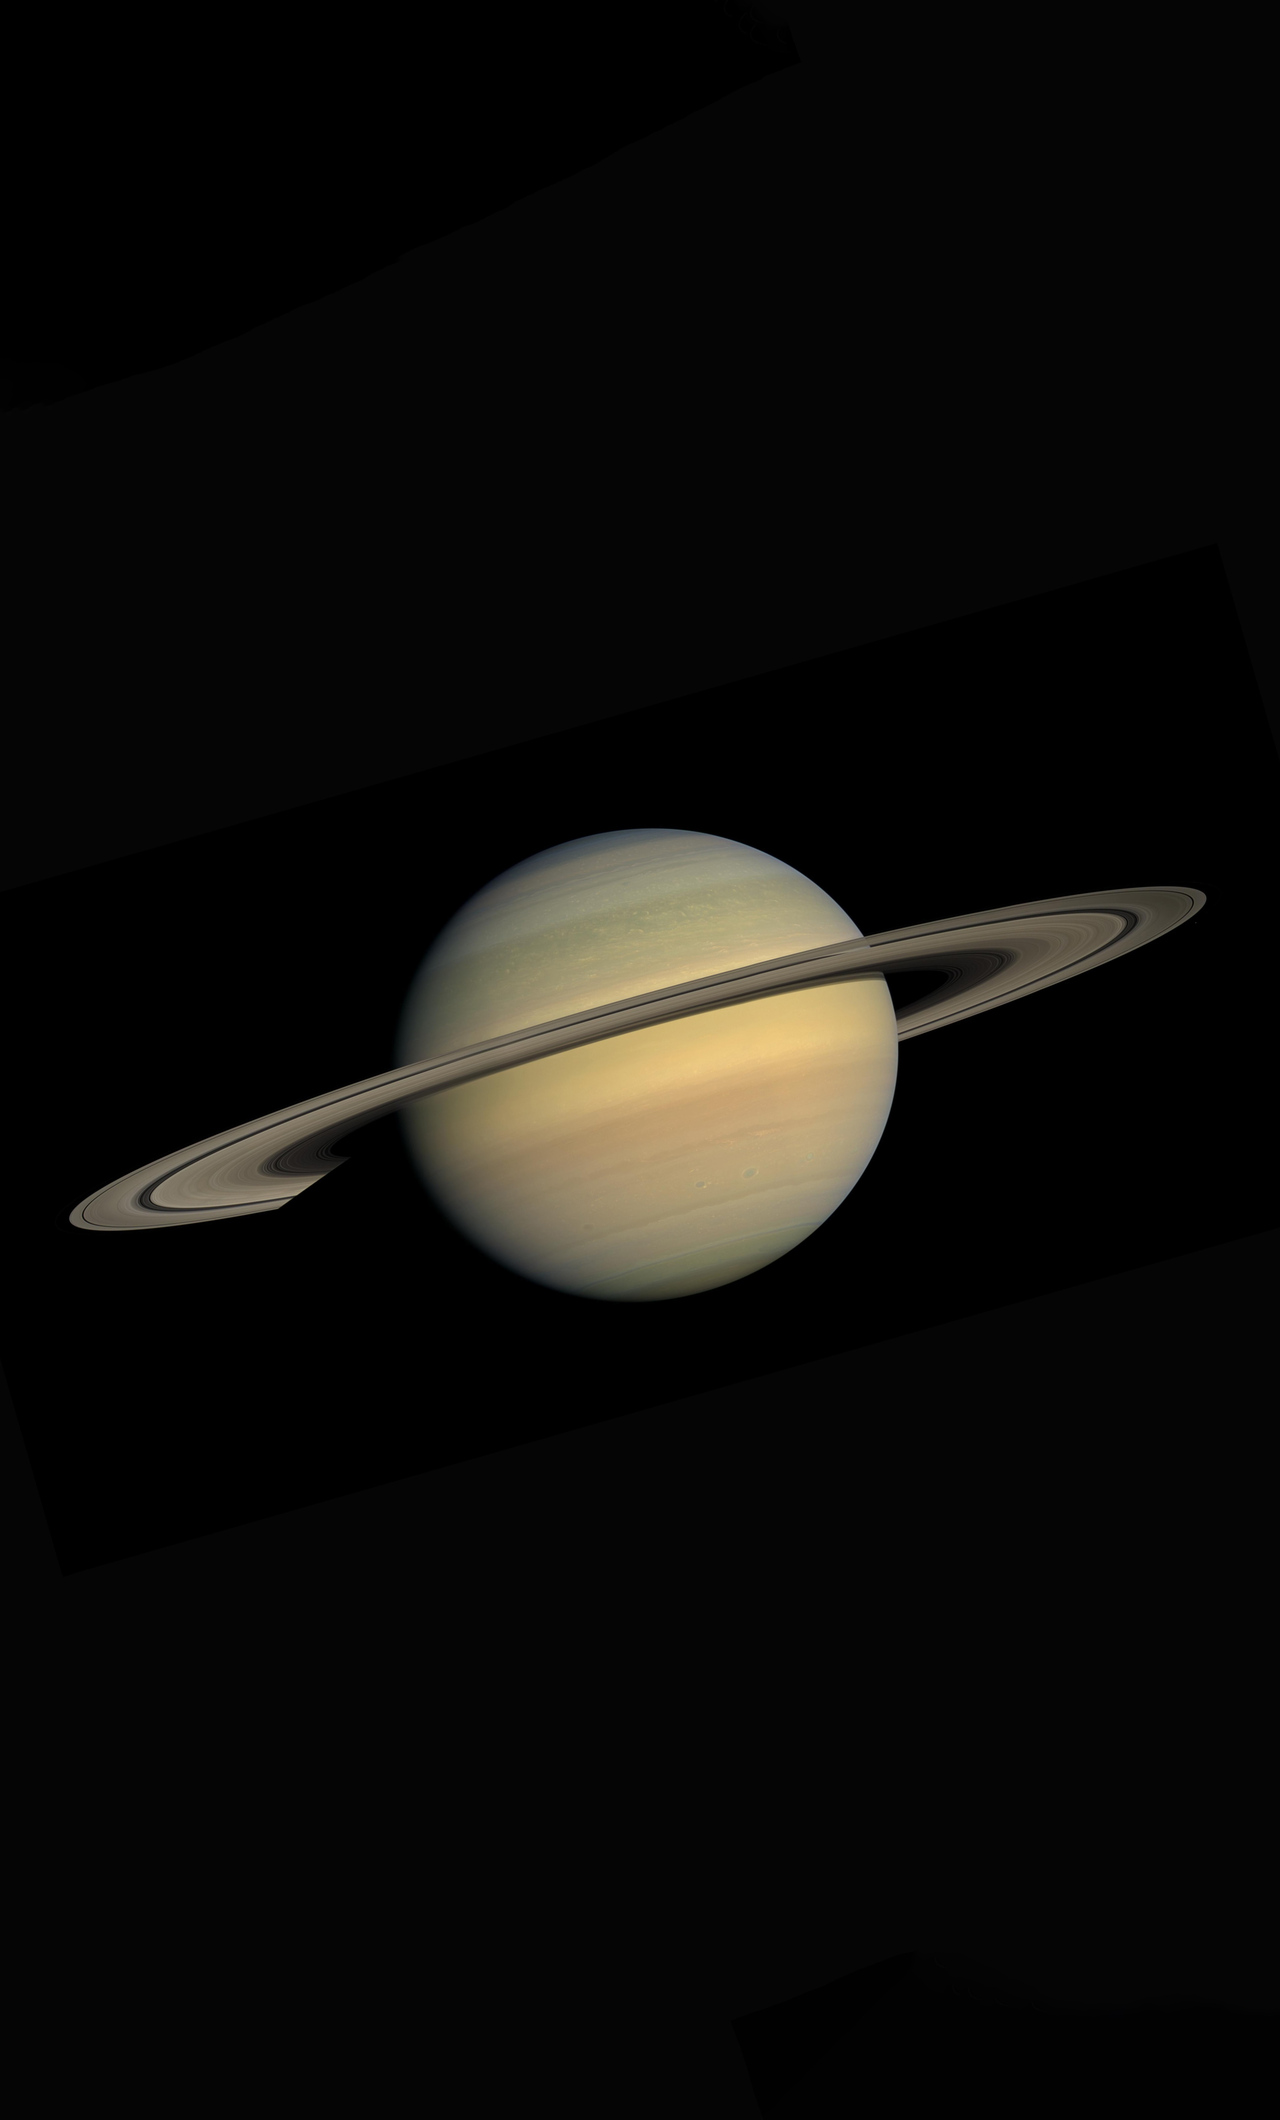 saturn-as-seen-from-the-cassini-huygens-space-research-mission-nasa-5k-v6.jpg